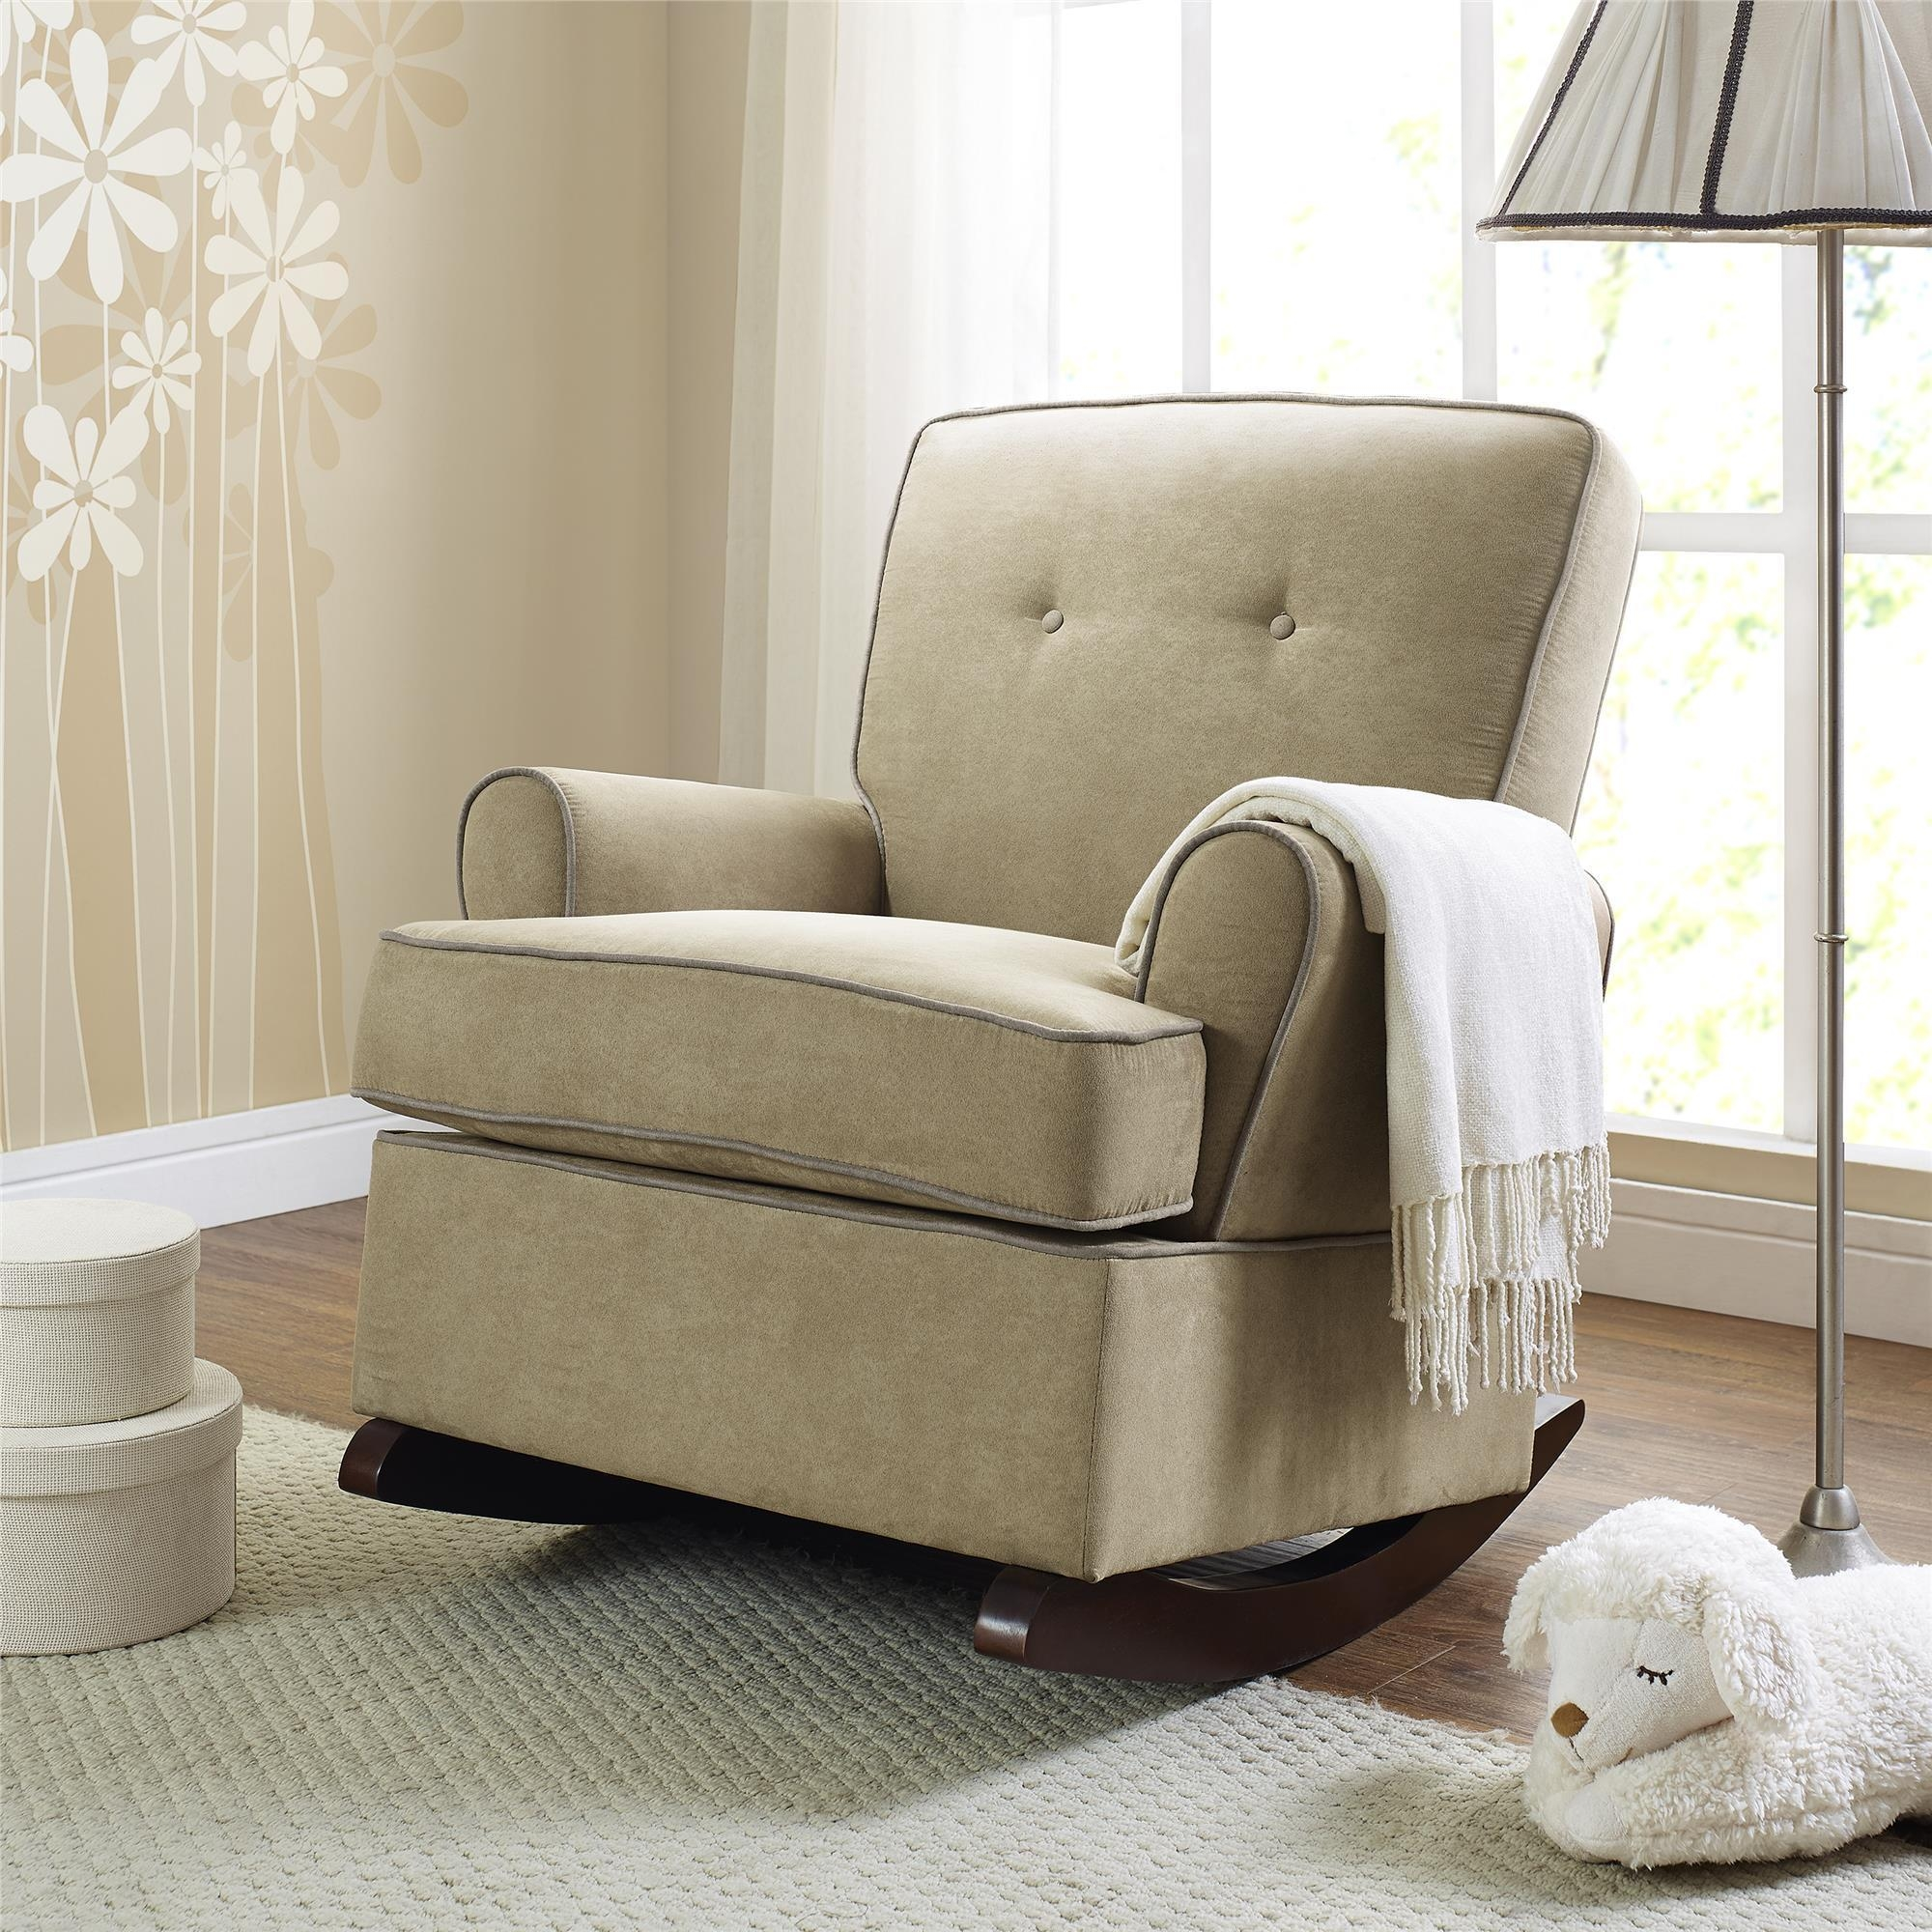 Attractive fabric upholstered glider rocker with armchairs and wooden laminate floor for living room